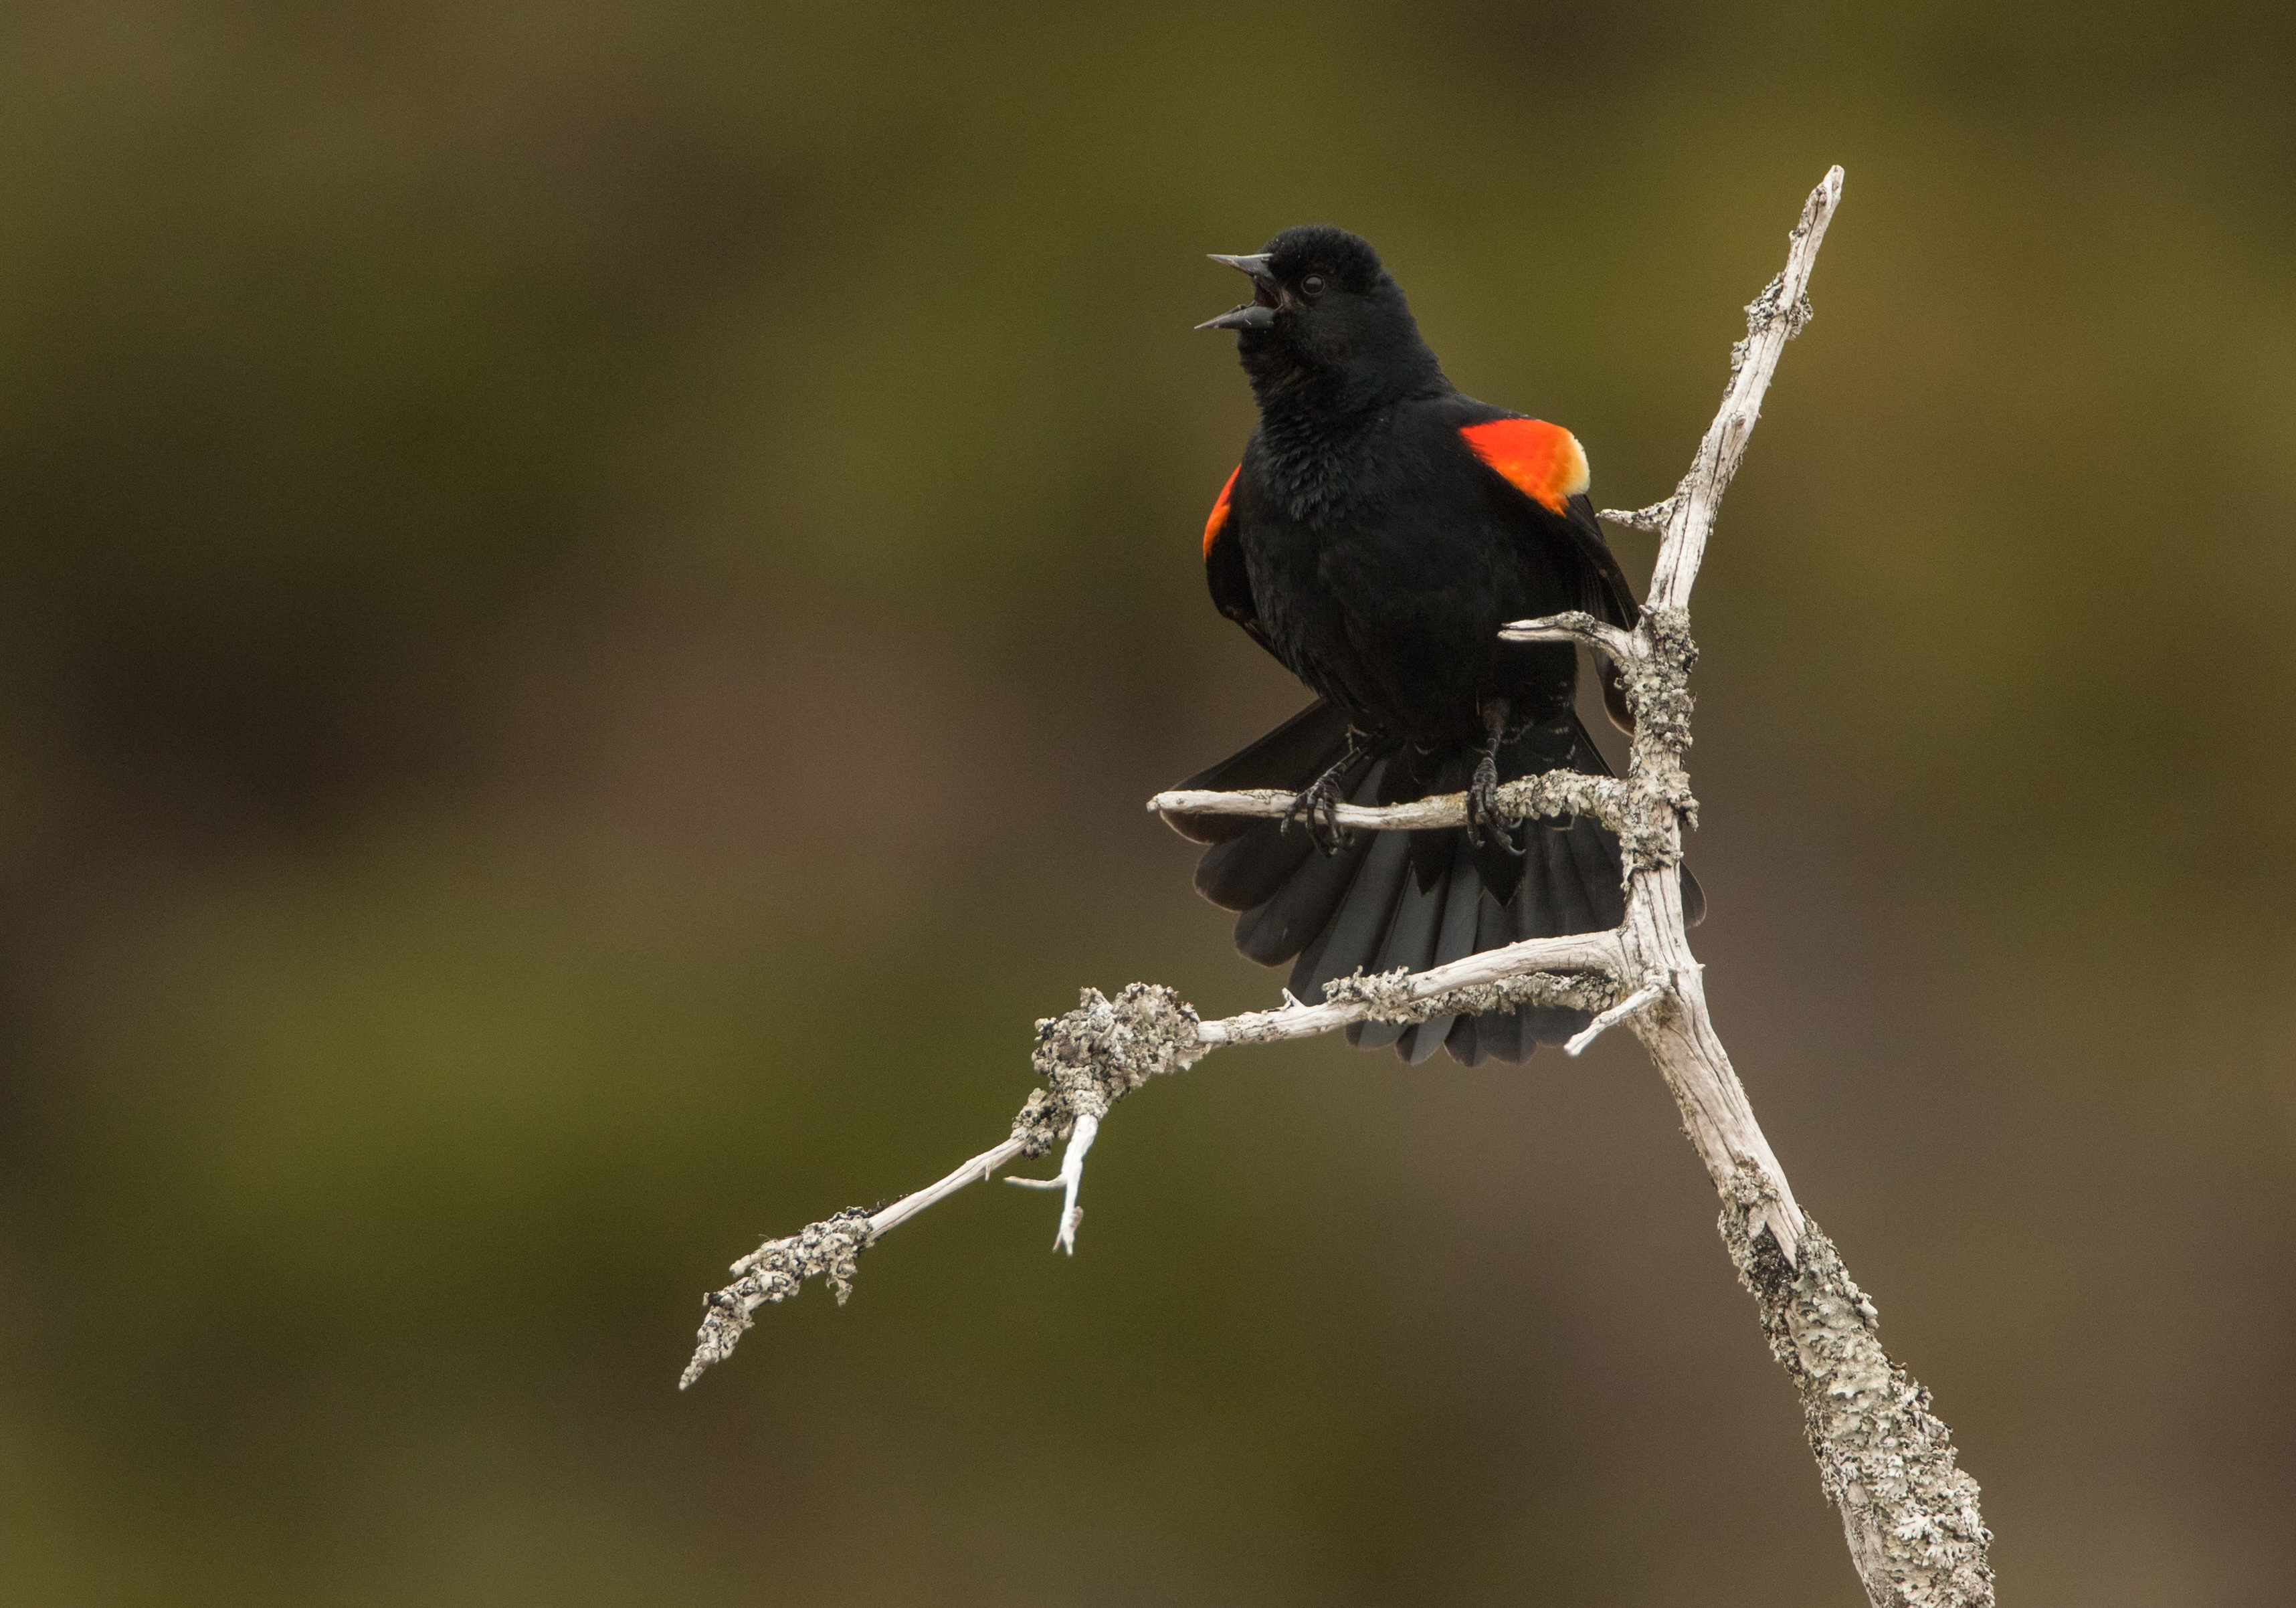 Just about every wetland on P.E.I. has a family of red-winged blackbirds during spring and summer. These birds, with bright red wing patches, require cattail marshes to nest and raise young. Protecting wetlands and ensuring we have wide buffer zones will protect this species for years to come. (Brendan Kelly)